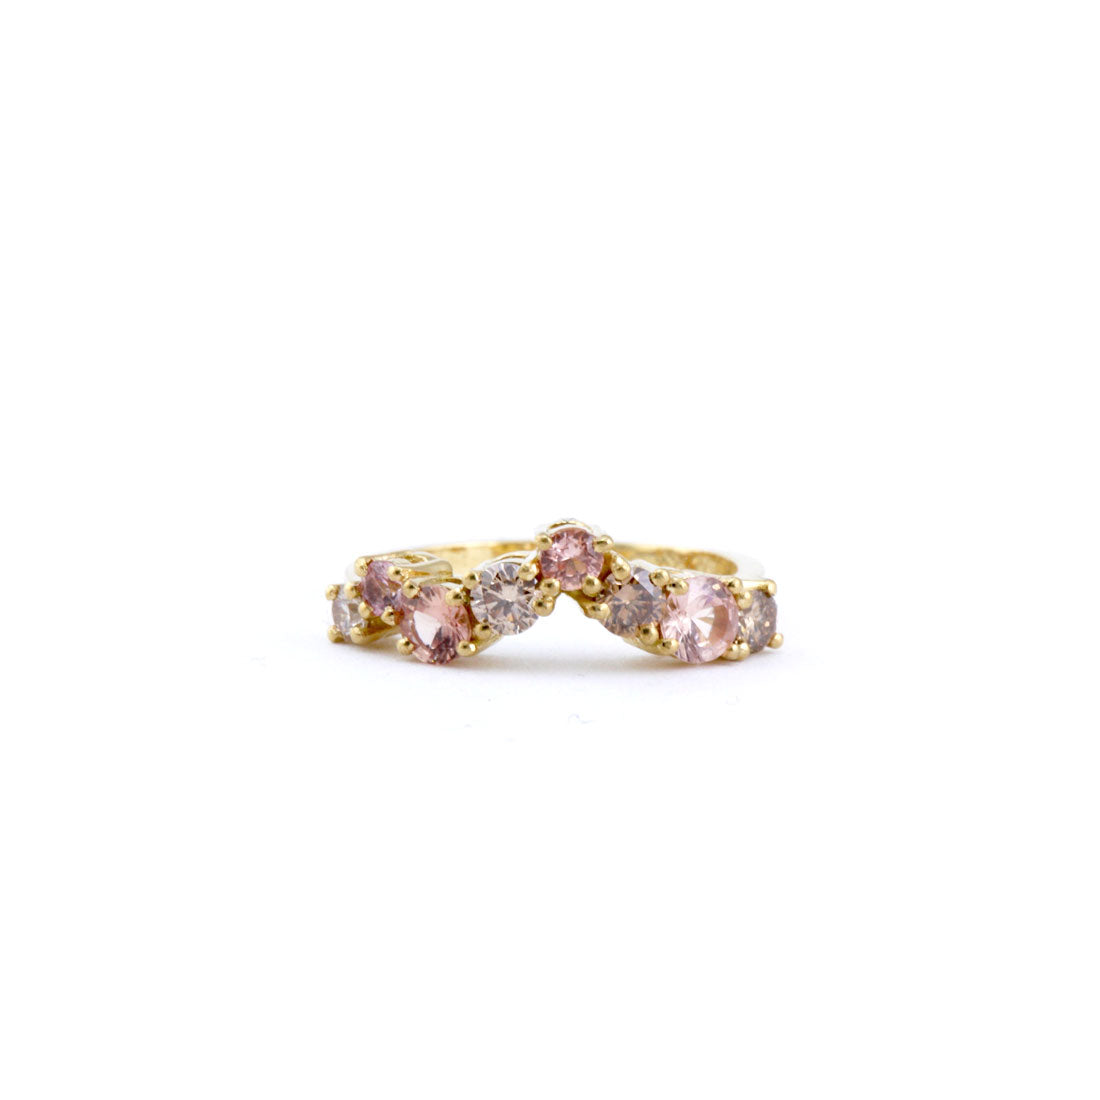 Pink and champagne diamond wedding band